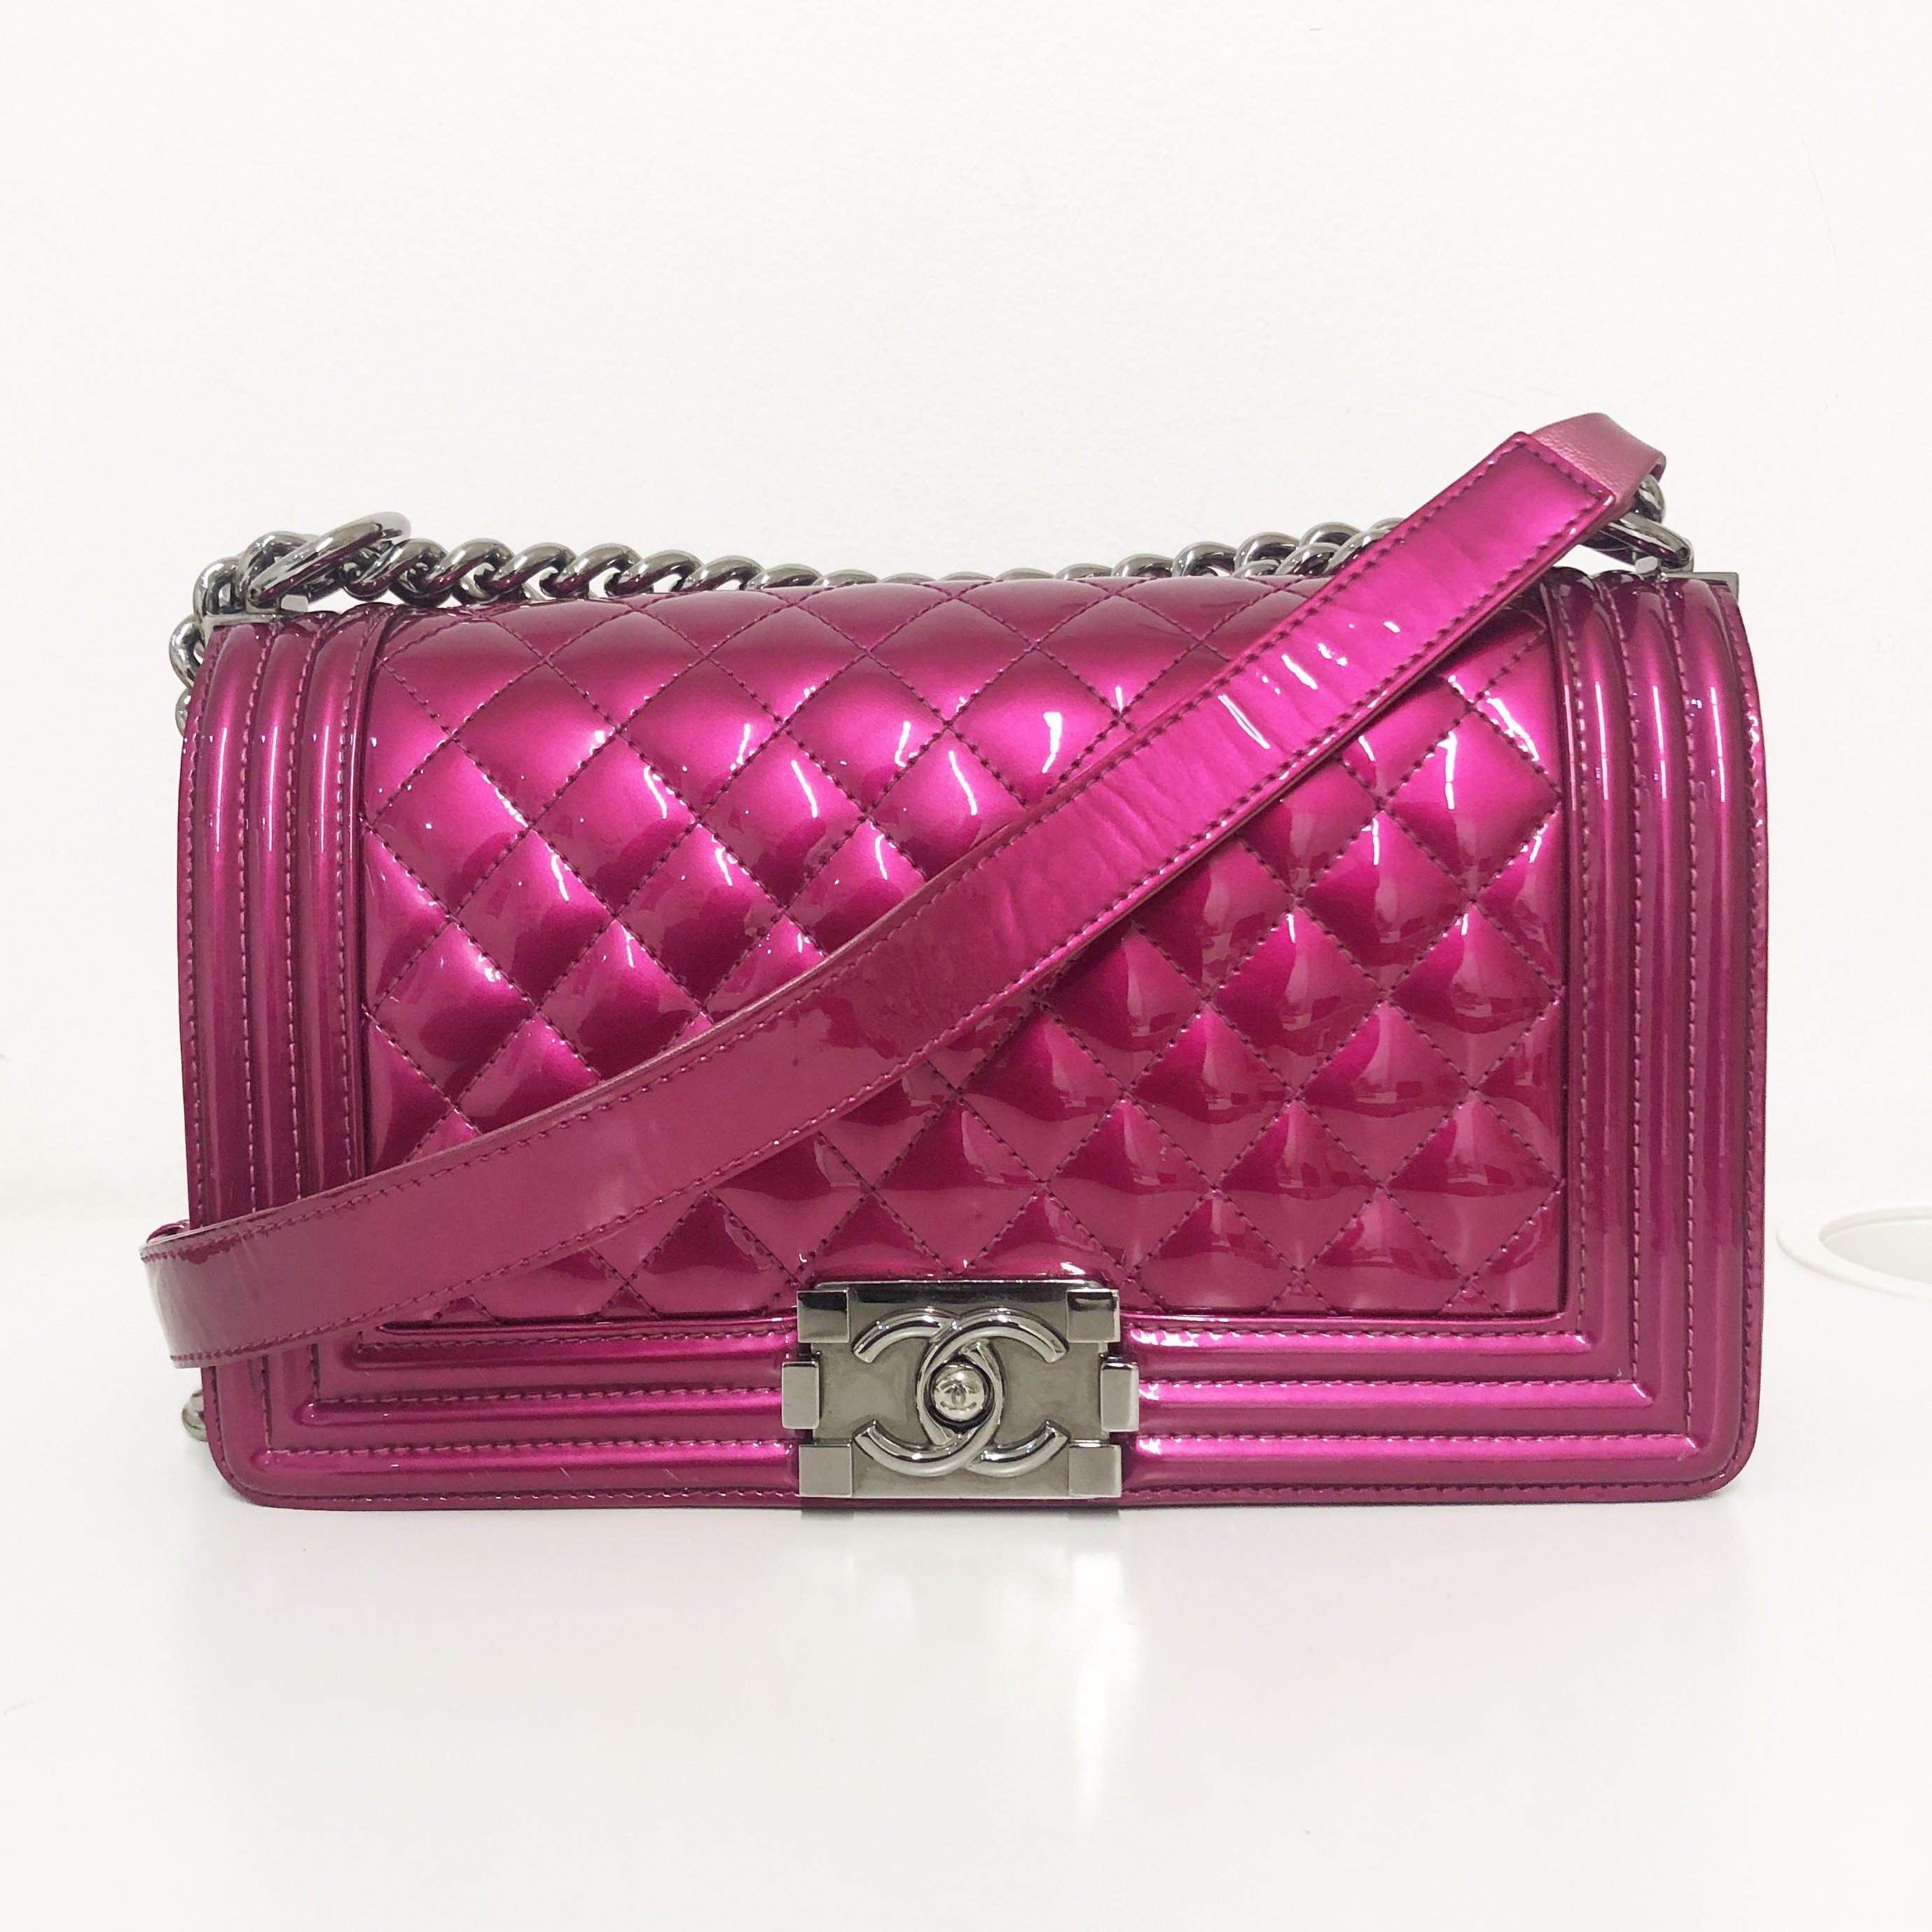 Chanel Medium Le Boy Bag in Fuschia